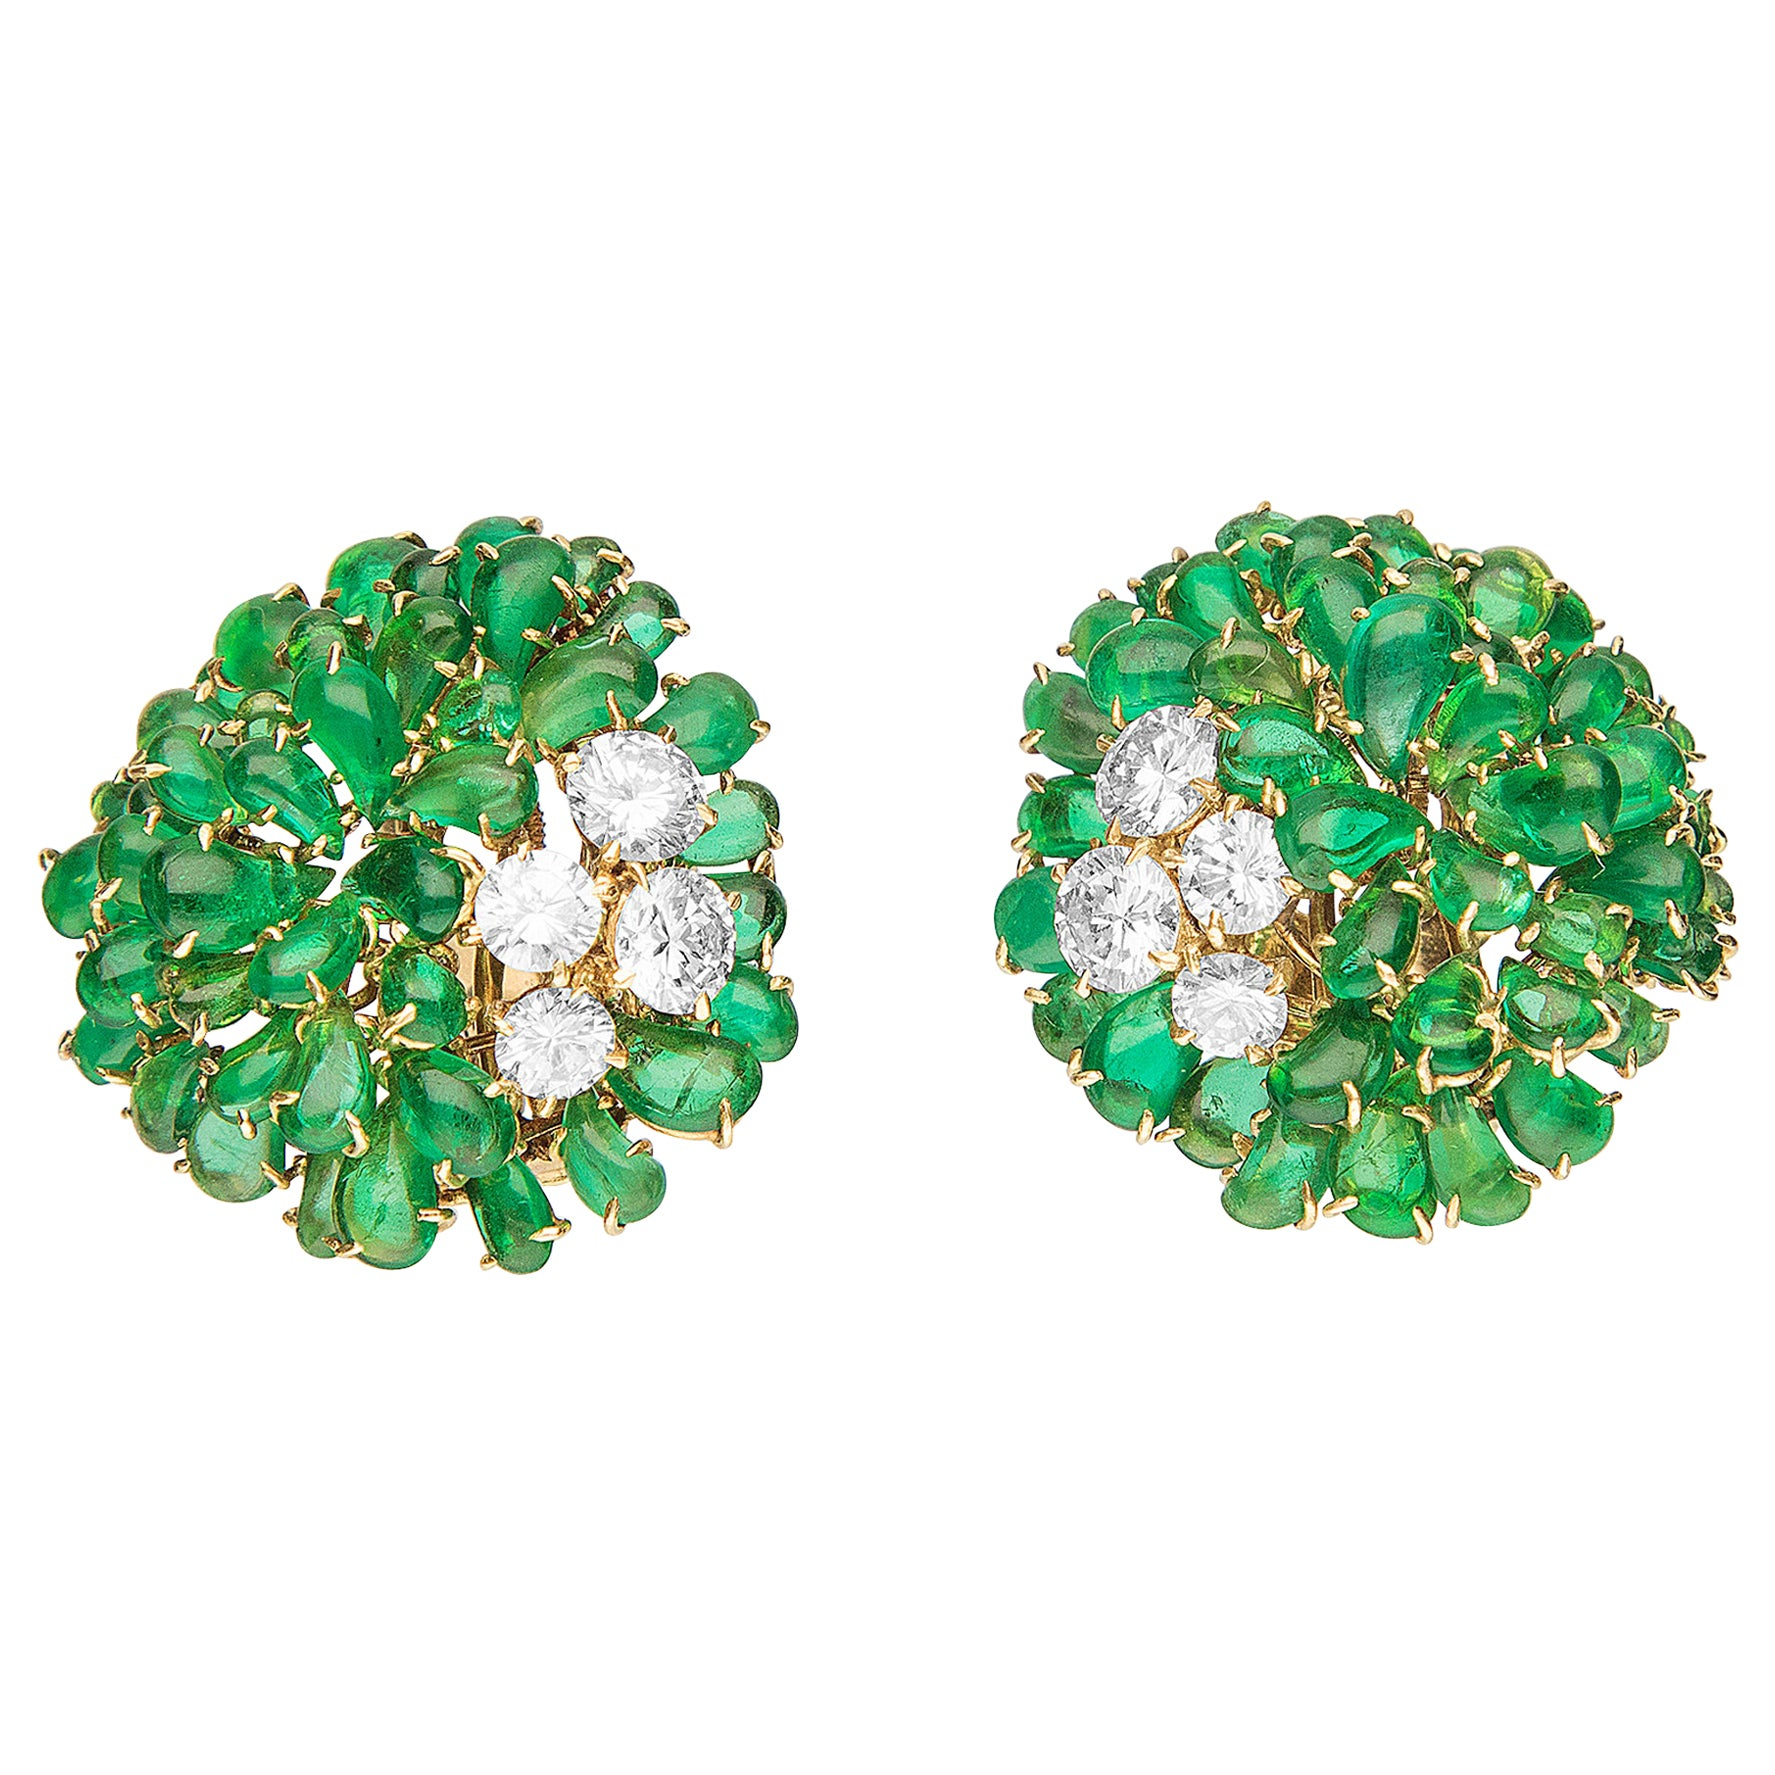 Van Cleef & Arpels 1960s Emerald and Diamond Earrings